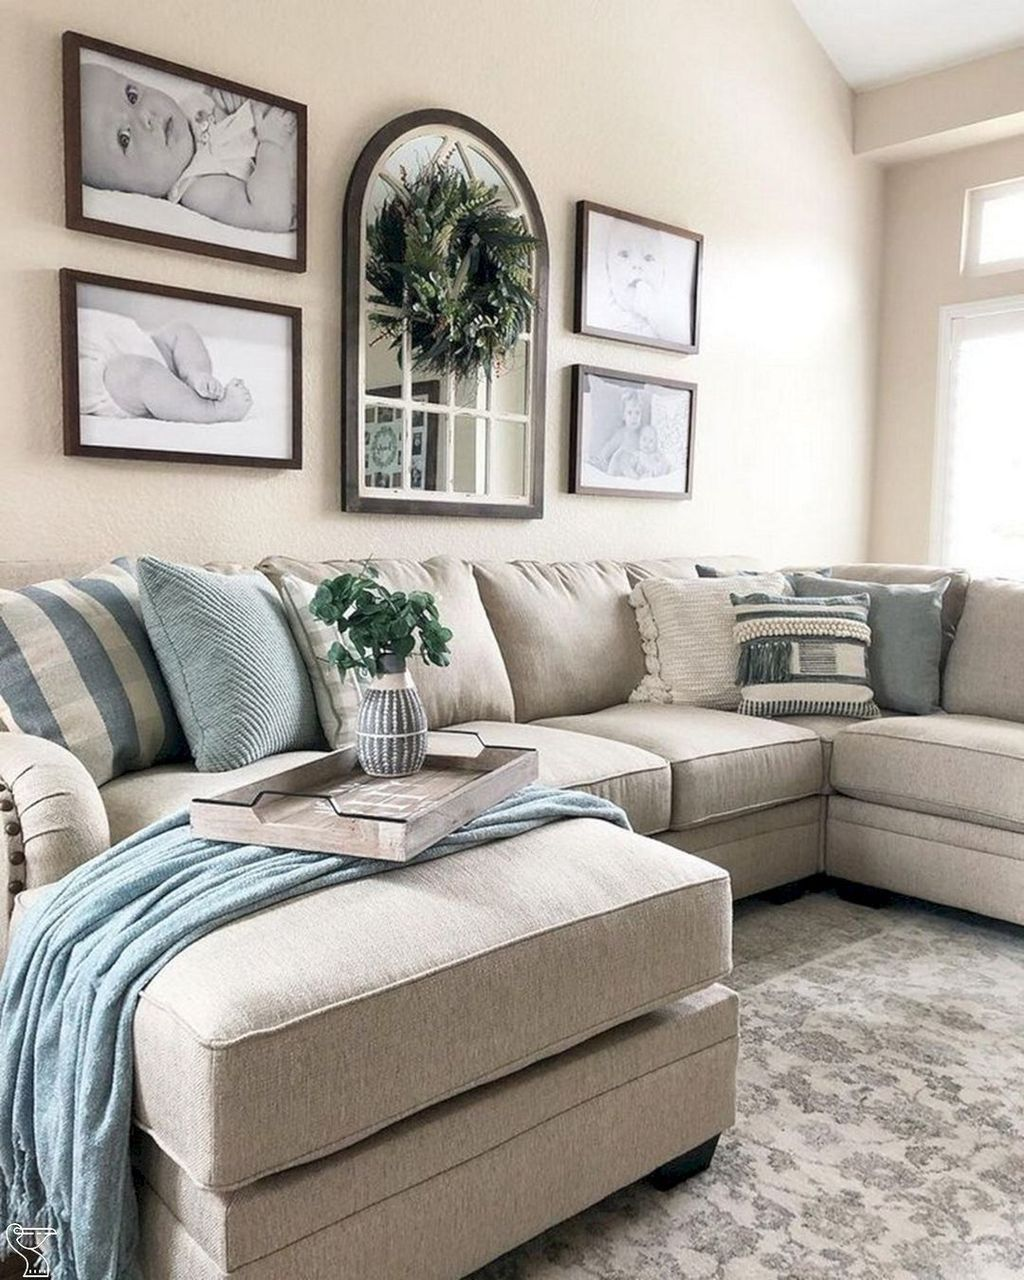 Admirable Farmhouse Living Room Decor Ideas 40